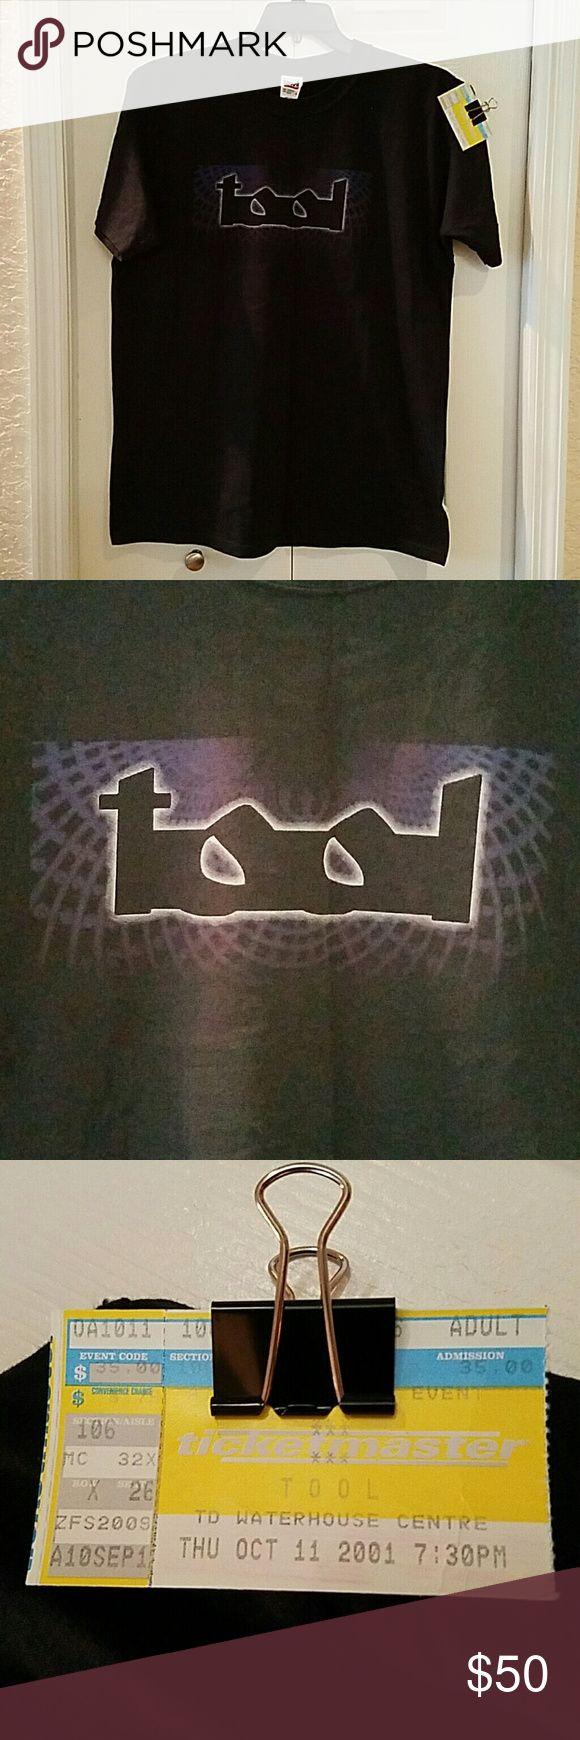 Tool concert Tee shirt 2001 size Large Offered is a great Tool concert Tee shirt from 10/11/01 in Orlando, FL.  Men's Size Large. Ticket stub included for provenance. Lateralus Tour. Never worn. Shirts Tees - Short Sleeve